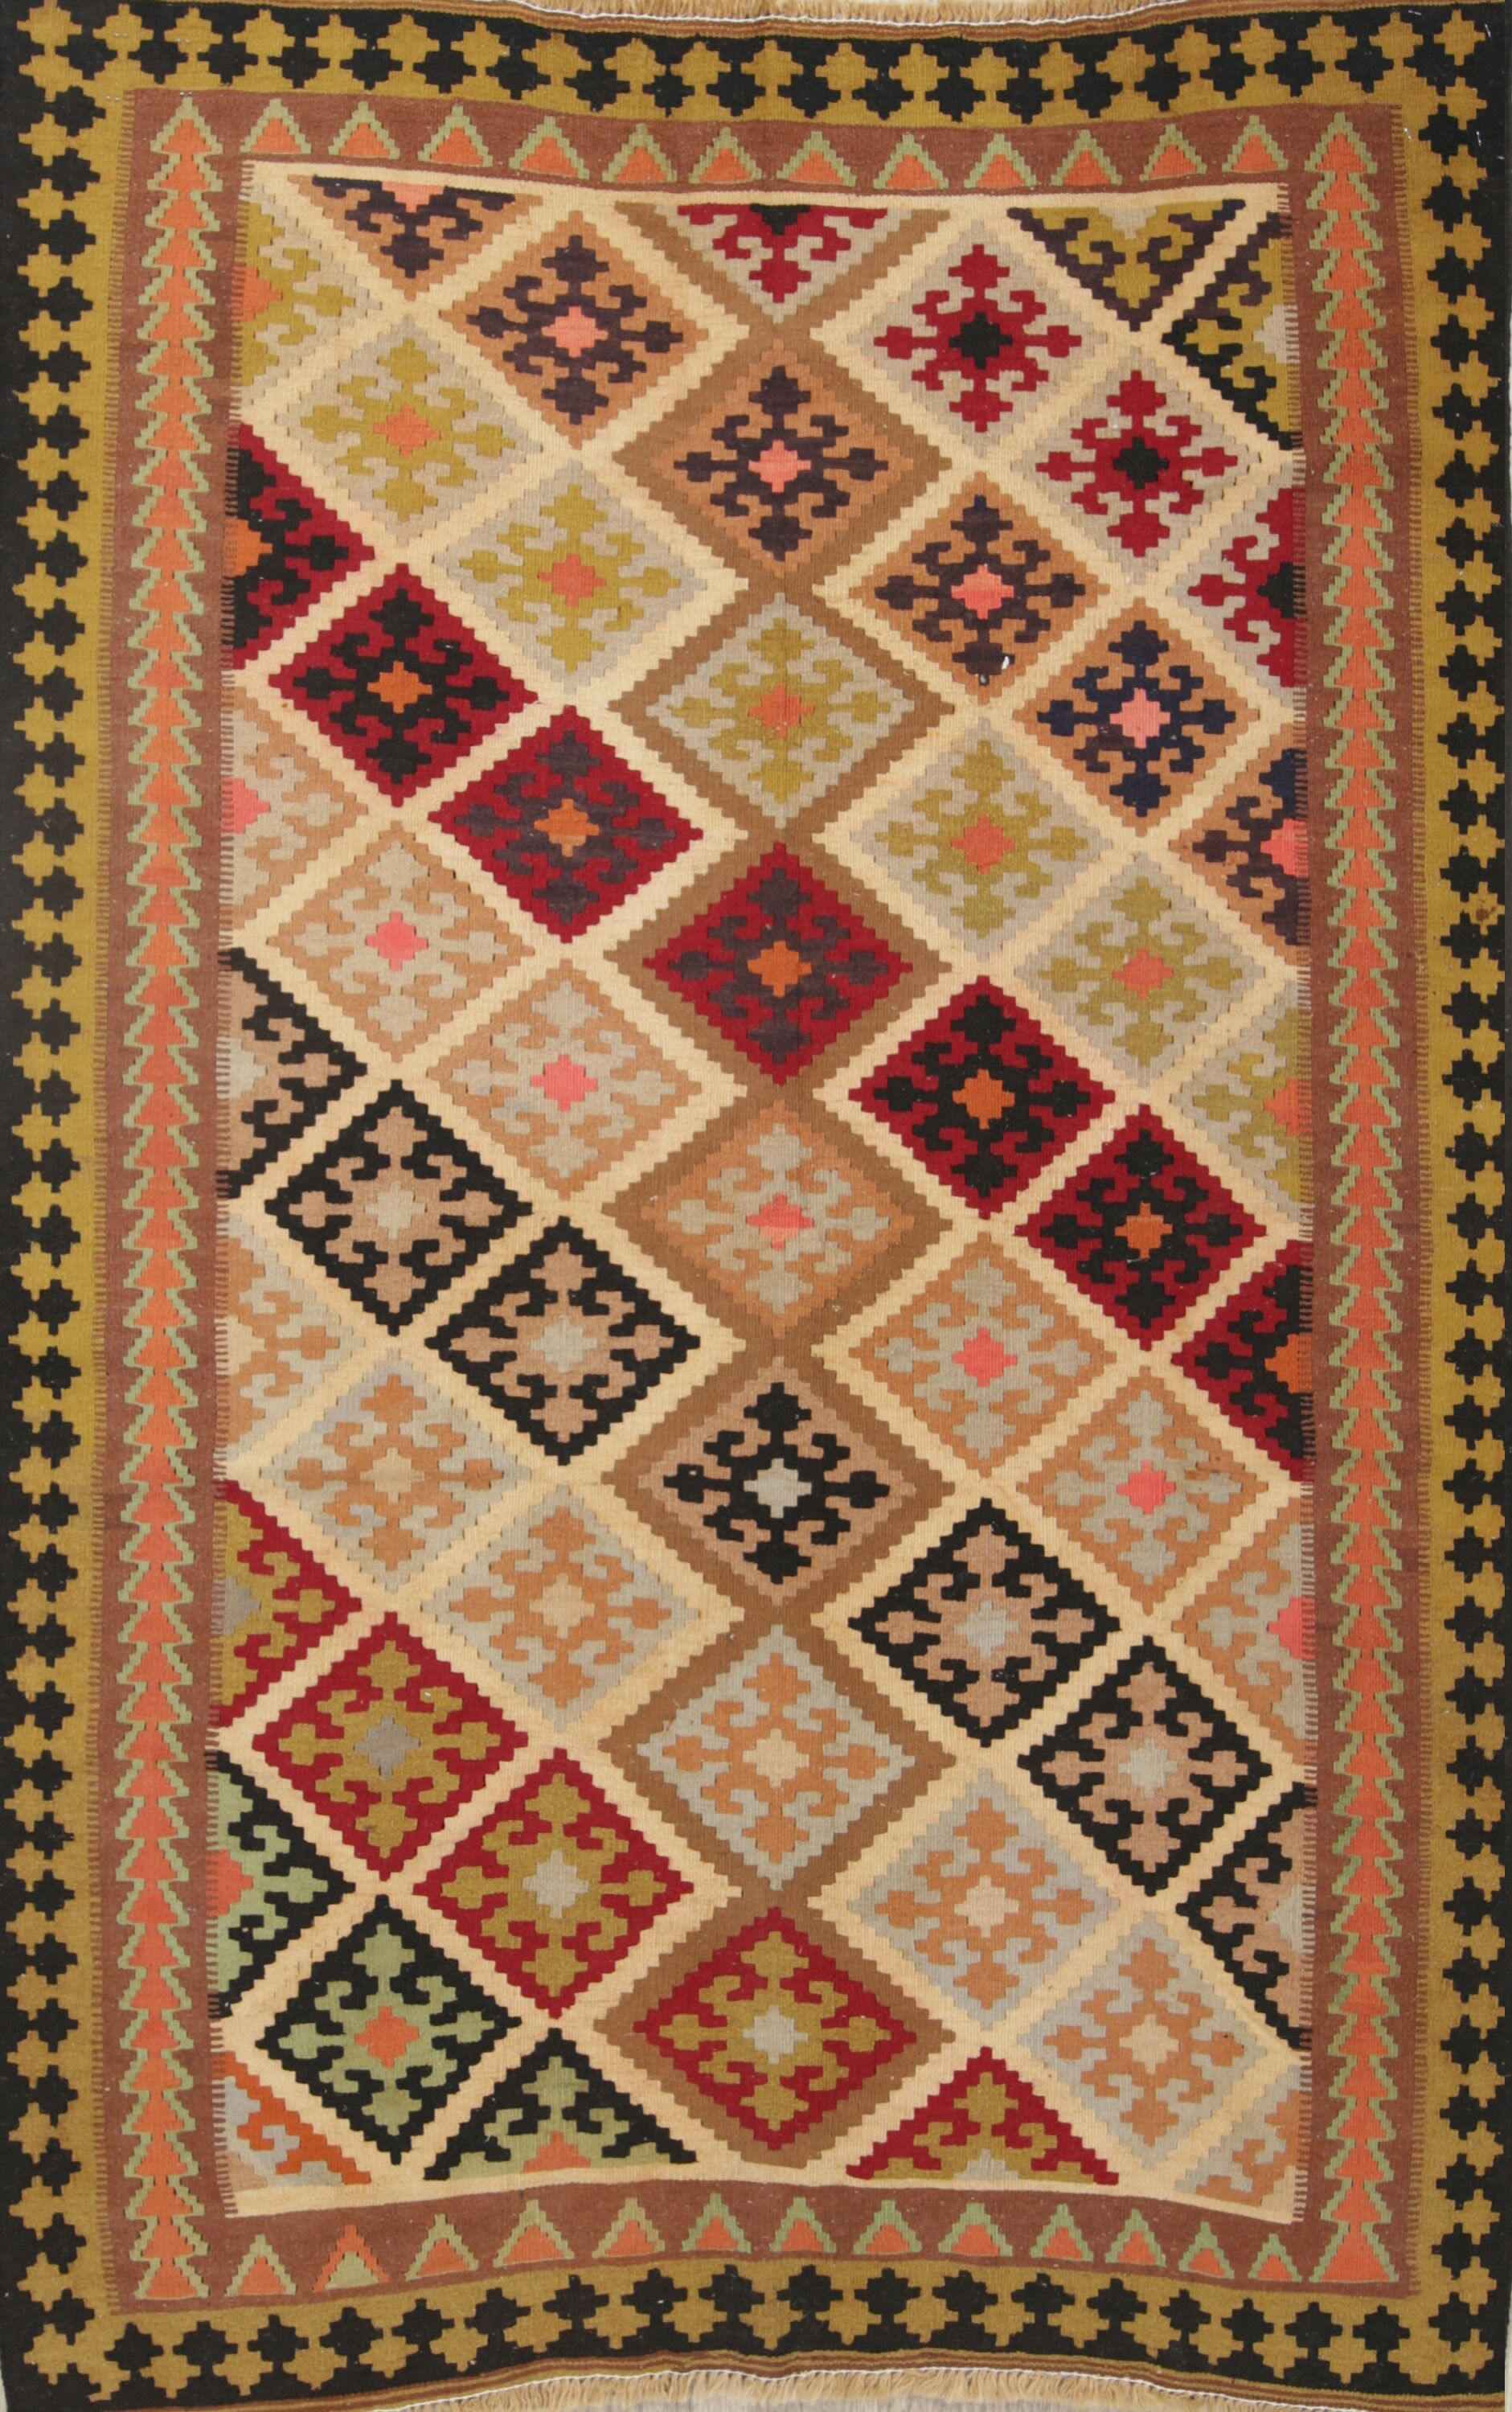 One-of-a-Kind Tribal Kilim Shiraz Persian Hand-Knotted 4'4